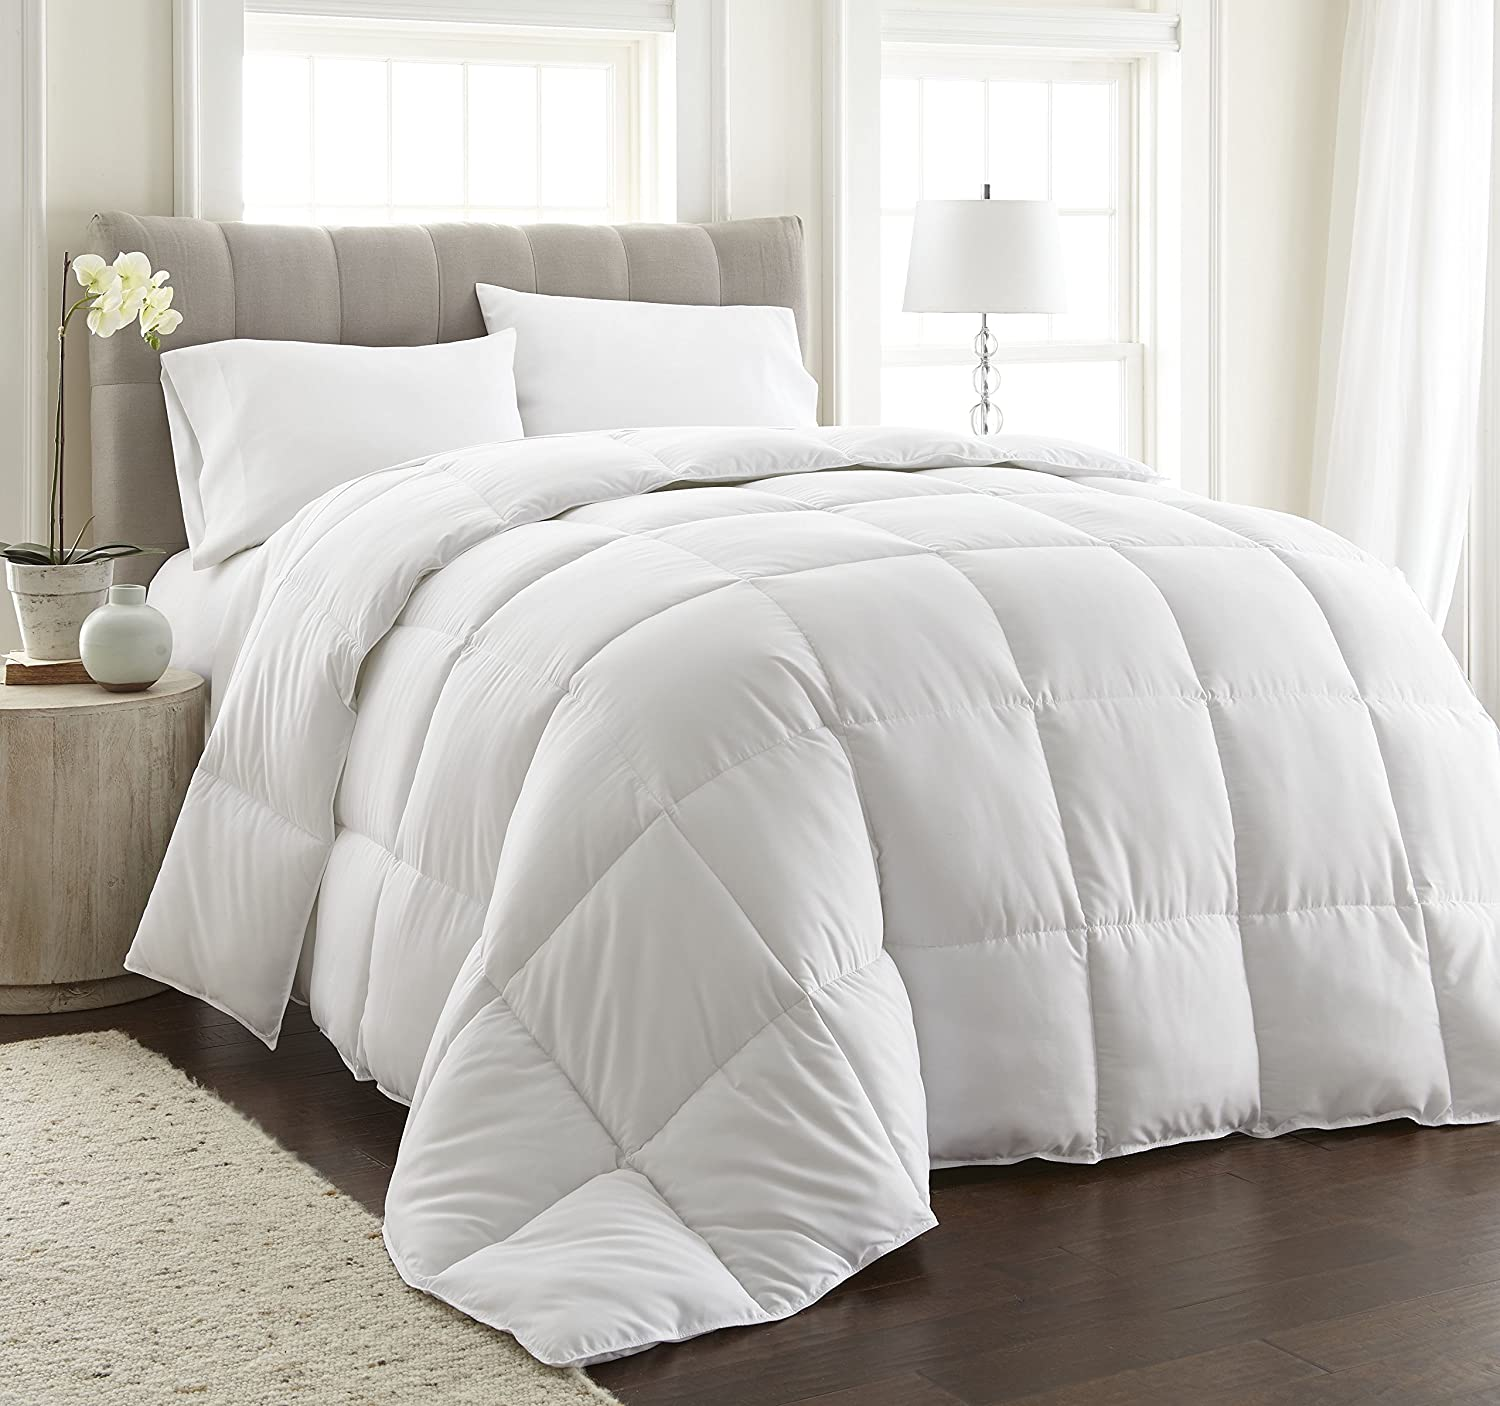 new the queen comforter reviews pick duvet york times a lowres alternative down utopia best company insert comforters bedding wirecutter by